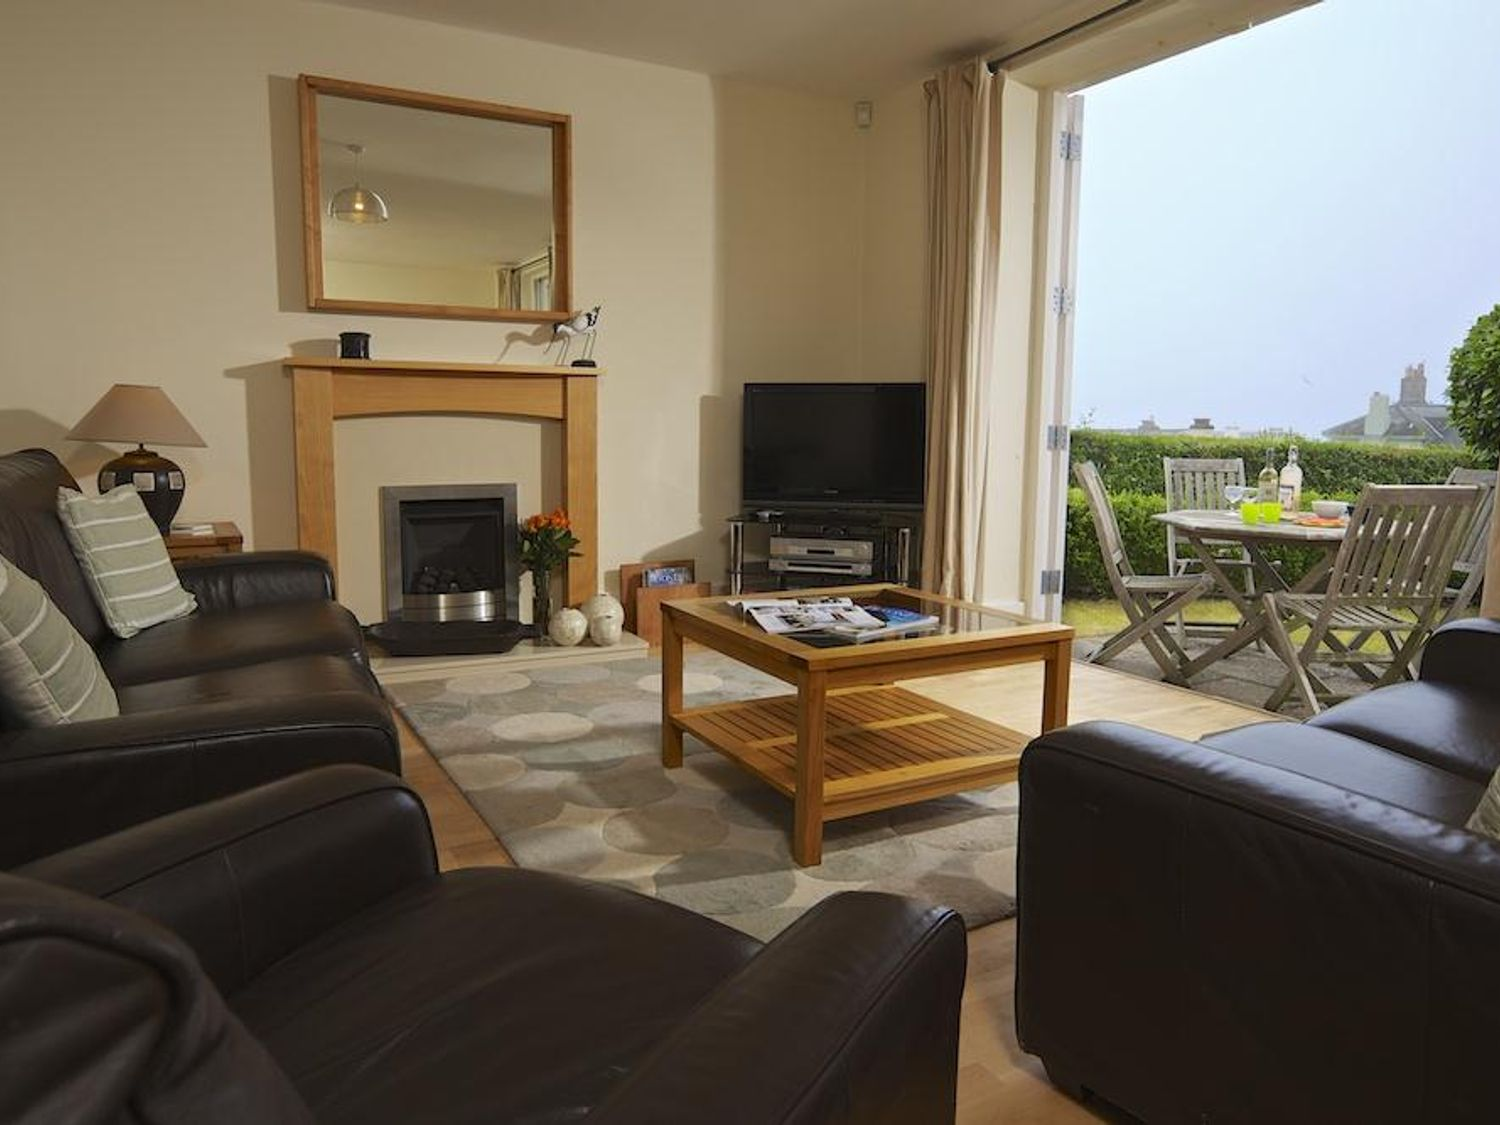 3 Combehaven - Devon - 995005 - photo 1